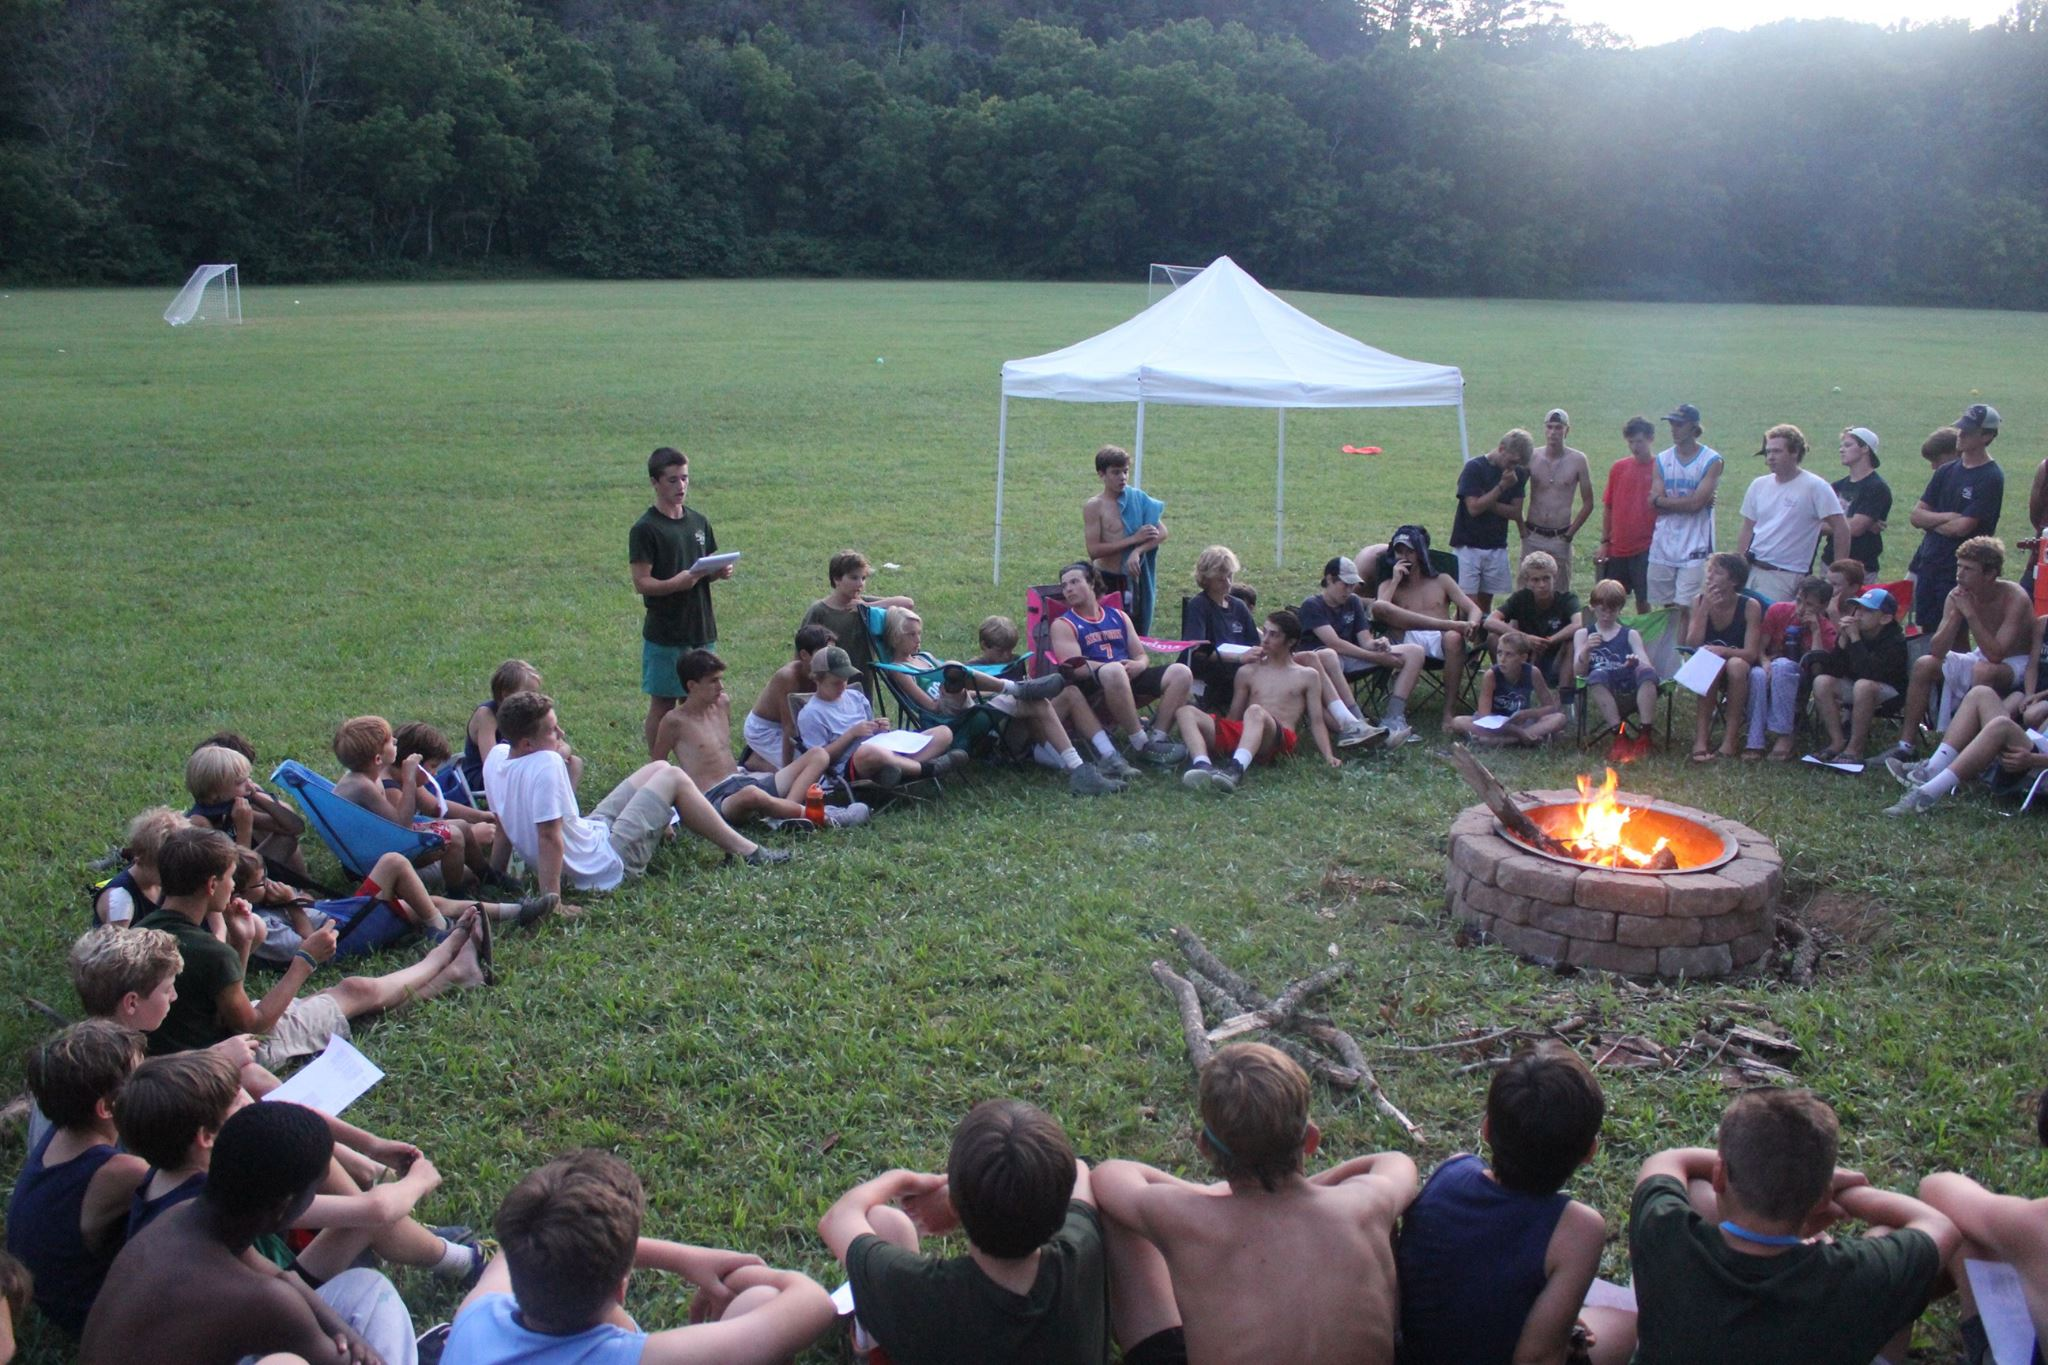 Special Activities: - Campfire Sing-Alongs, Fishing Hikes, Canoe Trips, Overnight Hiking Trips, Overnight Horseback Riding Trips, Dances, Church, Evening Challenge Matches and Games, Navy vs. Green Competitions, Archery Tournaments, Riflery Tournaments, Tug of War, and many more!